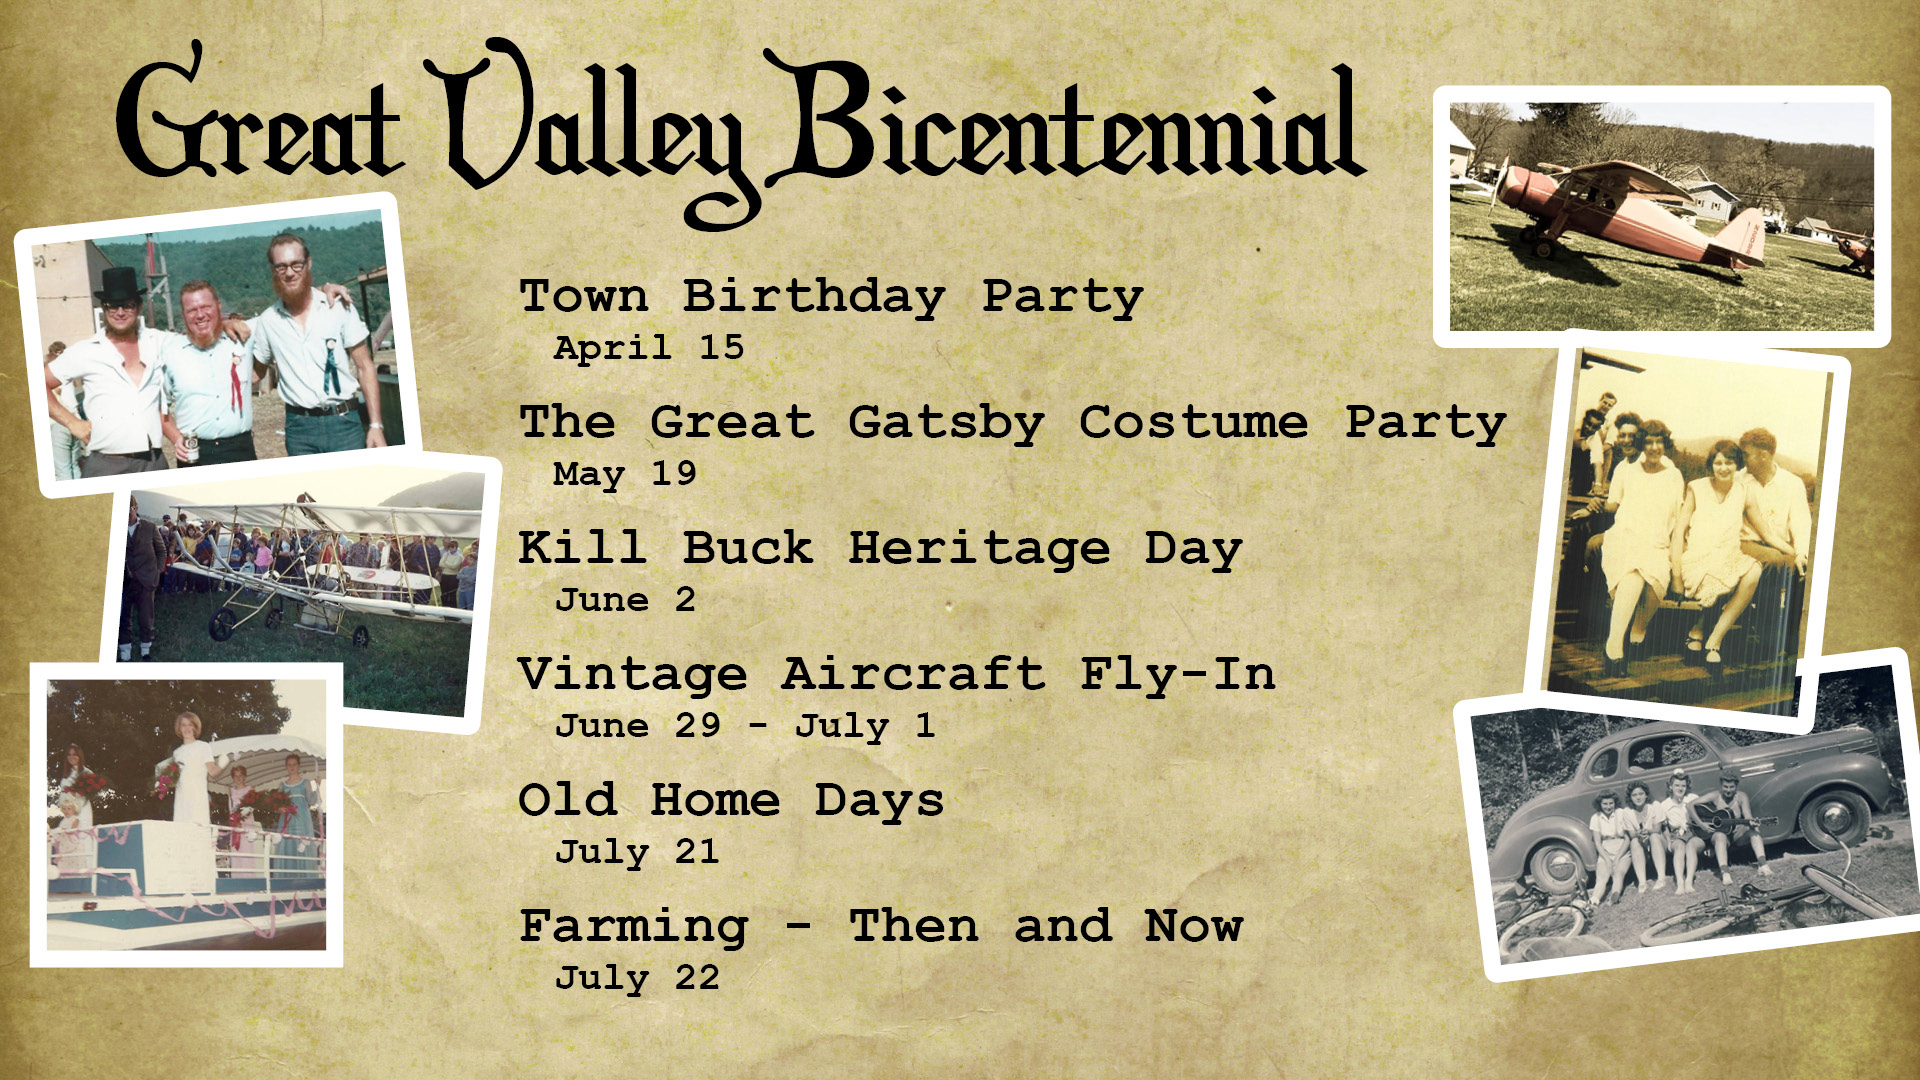 Great Valley Bicentennial